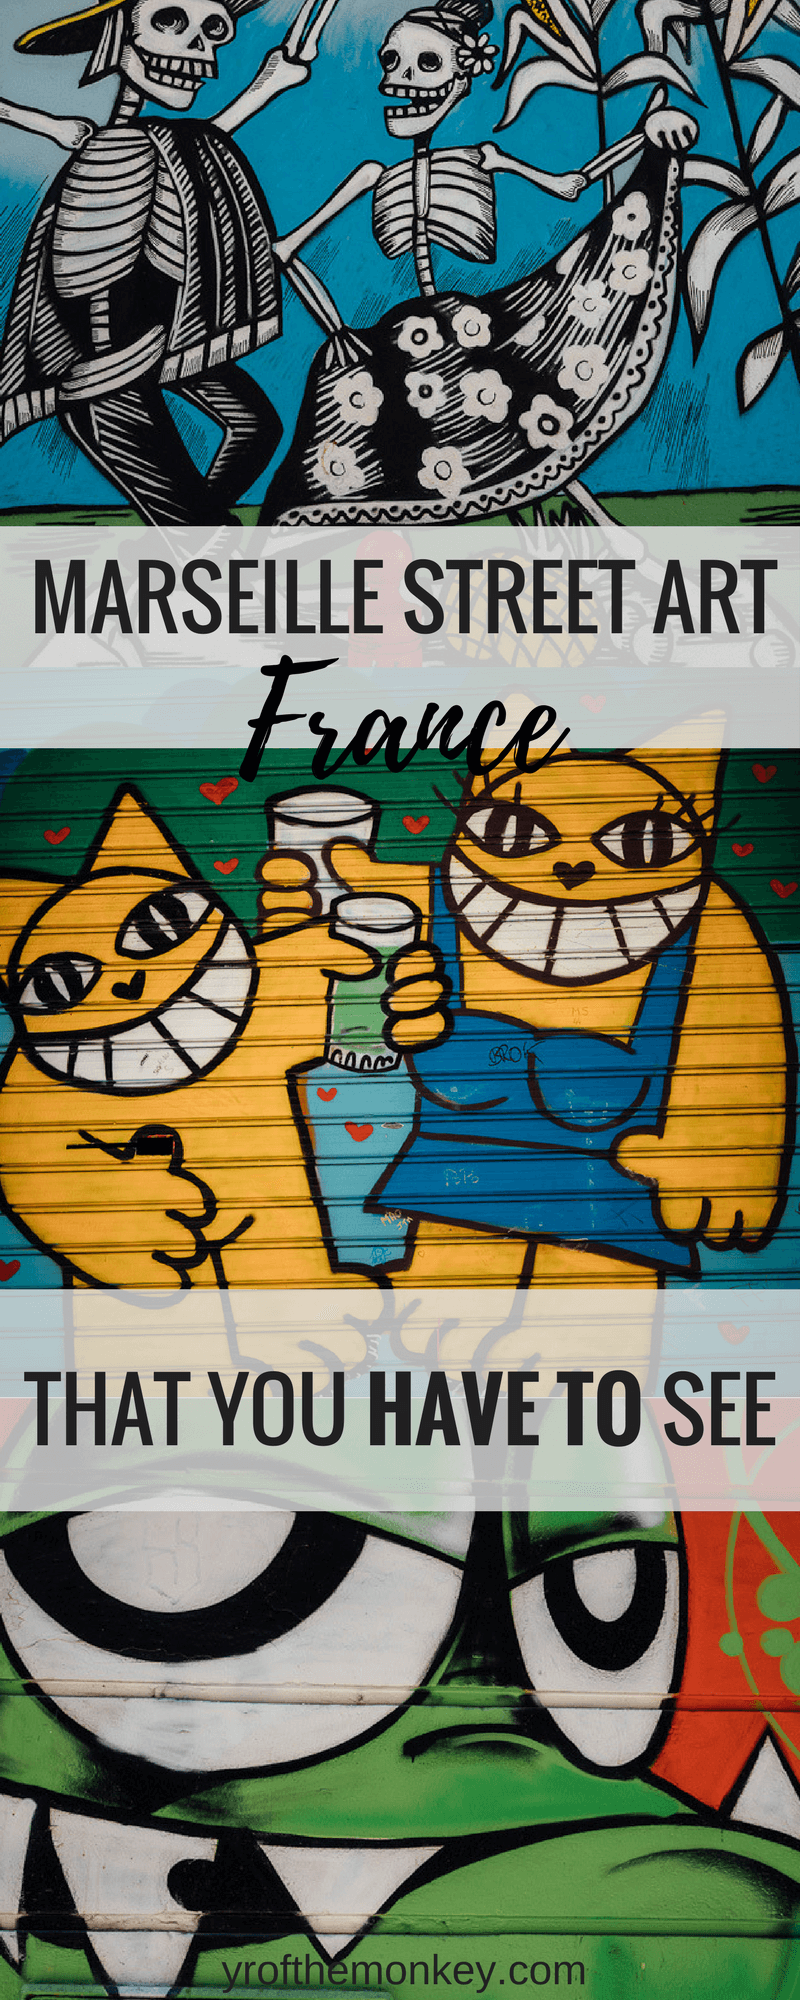 Marseille street art guide is your virtual tour of murals and street art in Marseille, France in the Le Panier and Cours Julien neighborhoods. Locations mentioned for you to explore these lovely murals in France's port city #travel #murals #streetart #street art #art #graffiti #Europe #France #Marseille